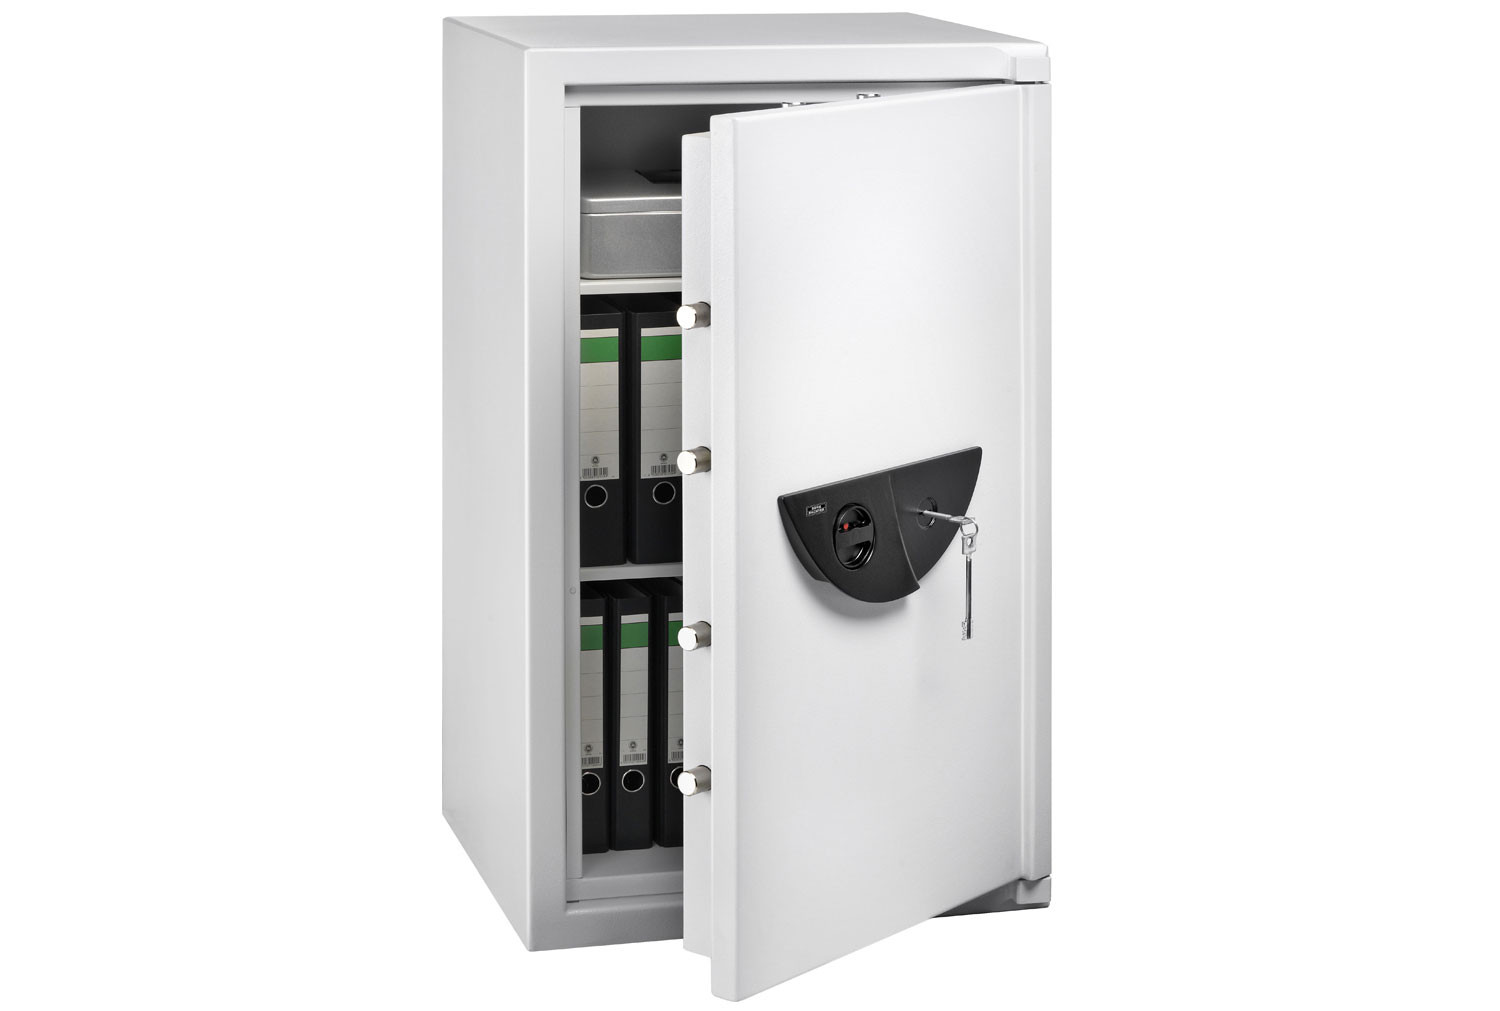 Burg Wachter Officeline Office 114 S Safety Cabinet With Key Lock (174ltrs)